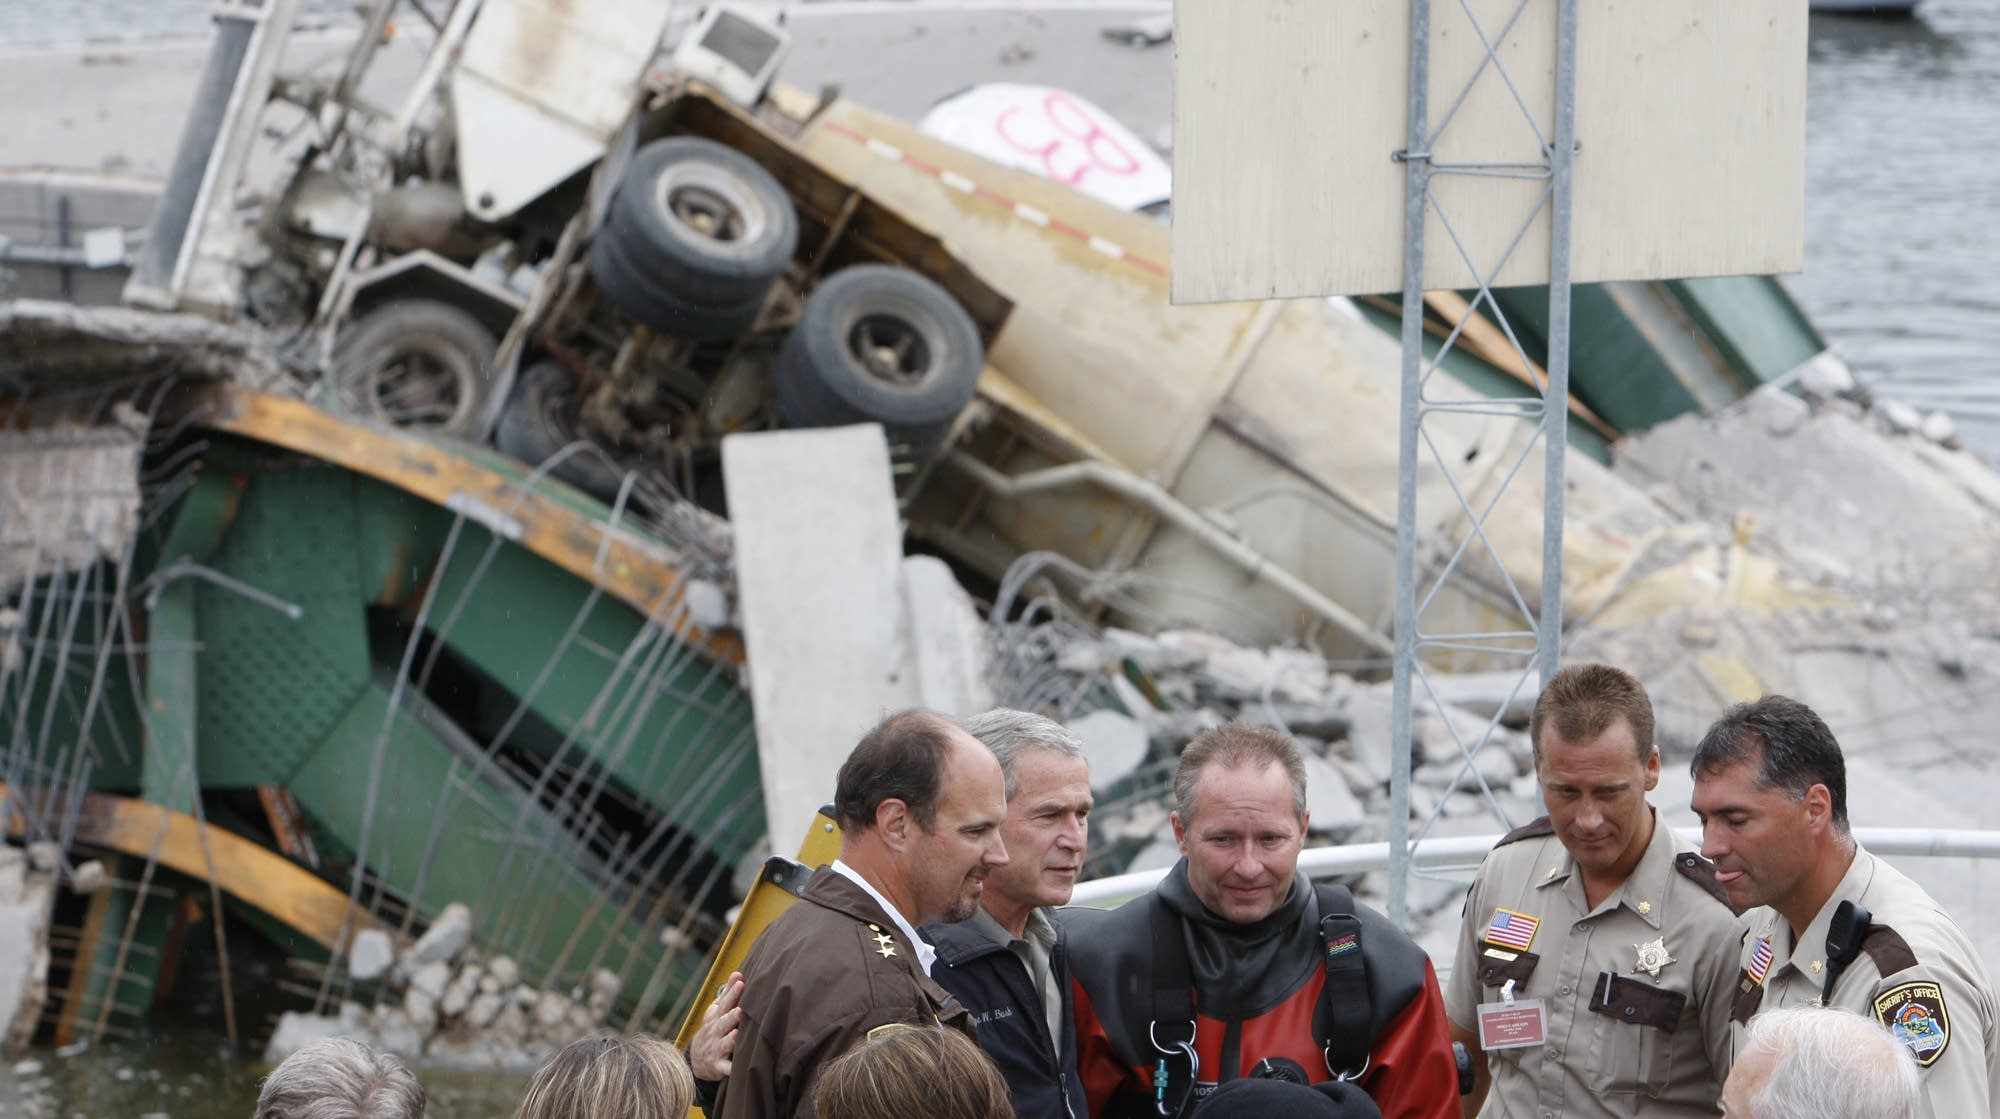 George W. Bush meets rescue workers at the bridge site.